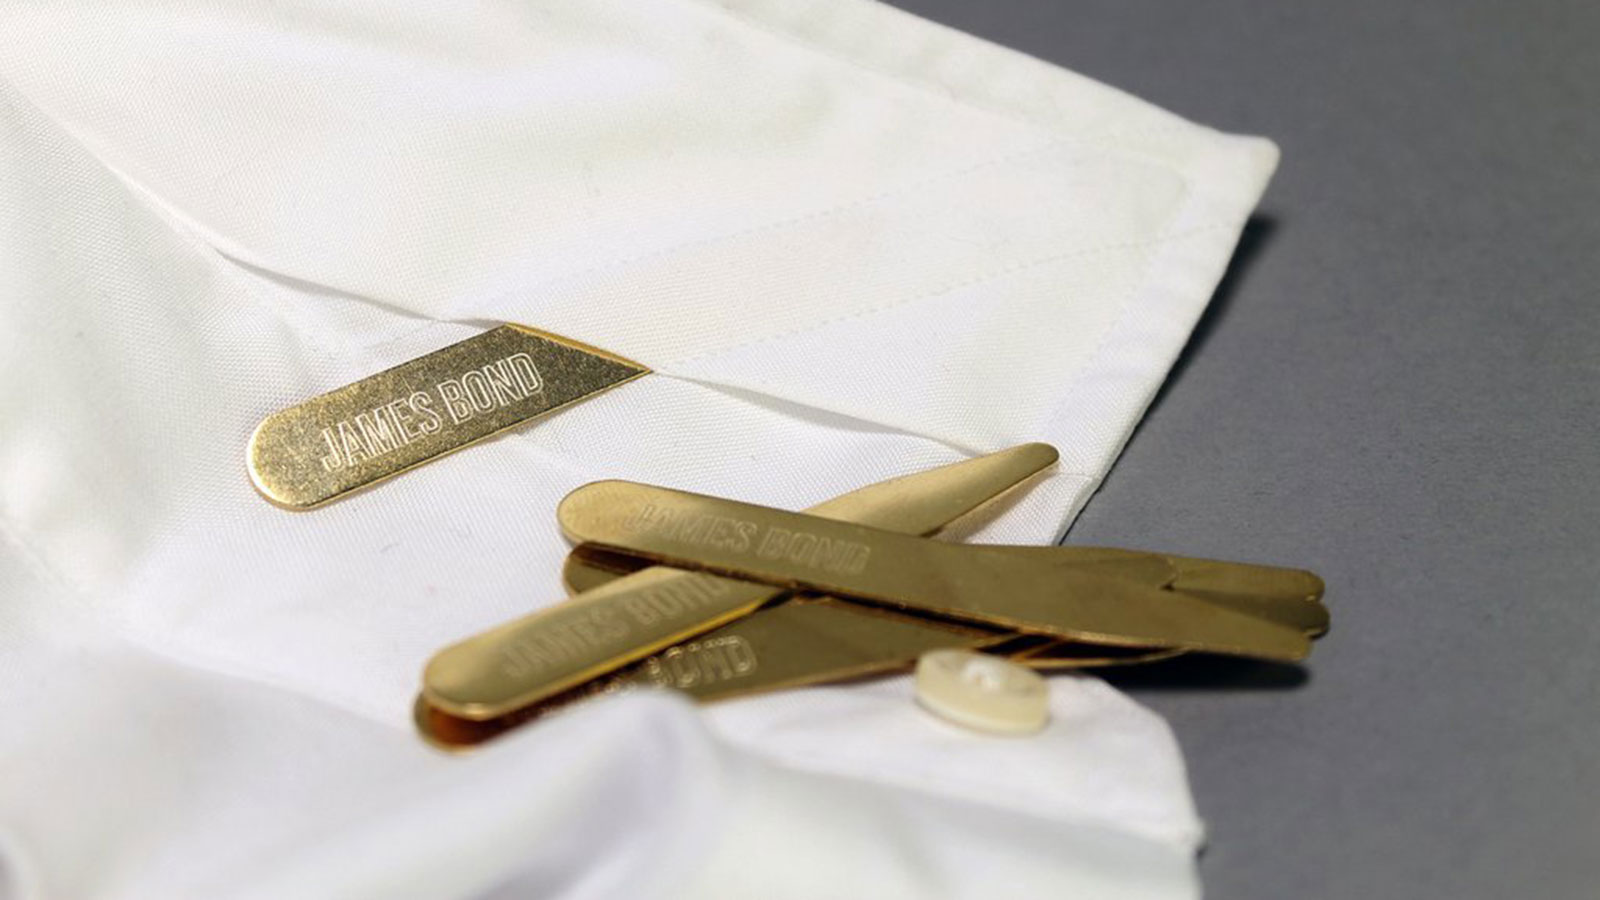 Brass Collar Stays   Gifts For Men   Gifts For The Professional